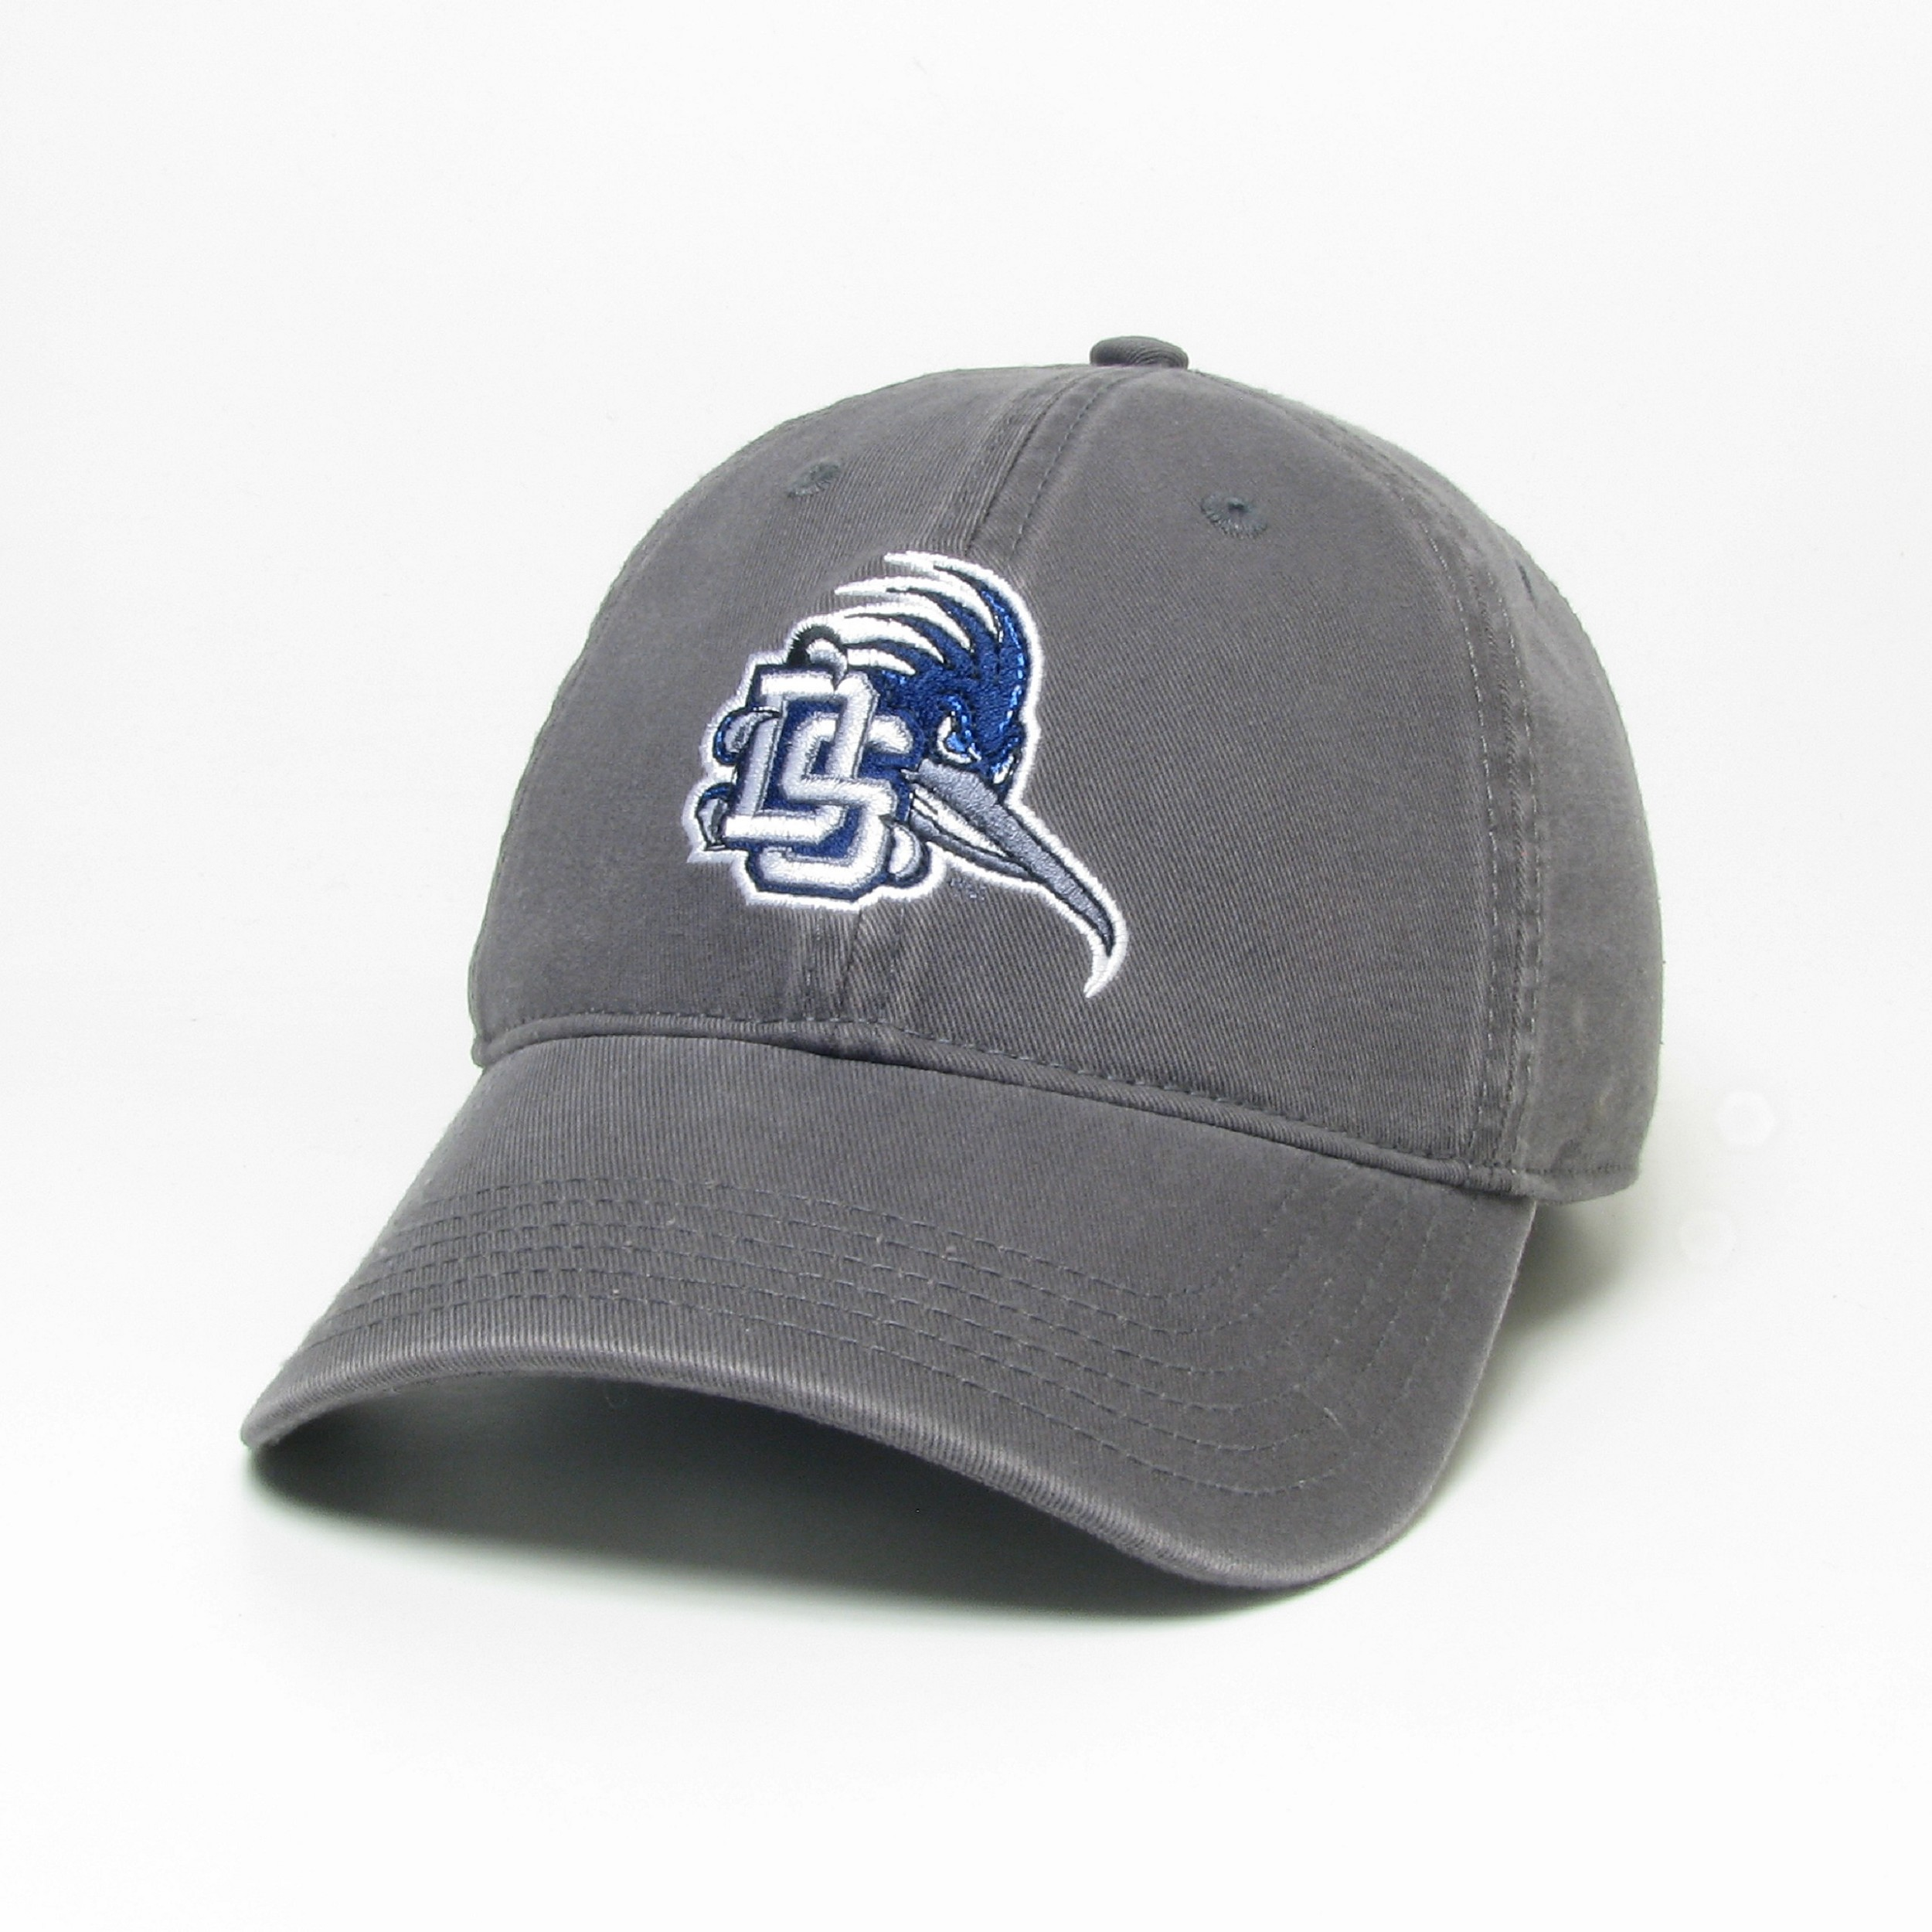 Dalton State Roadrunners Relaxed Twill Hat